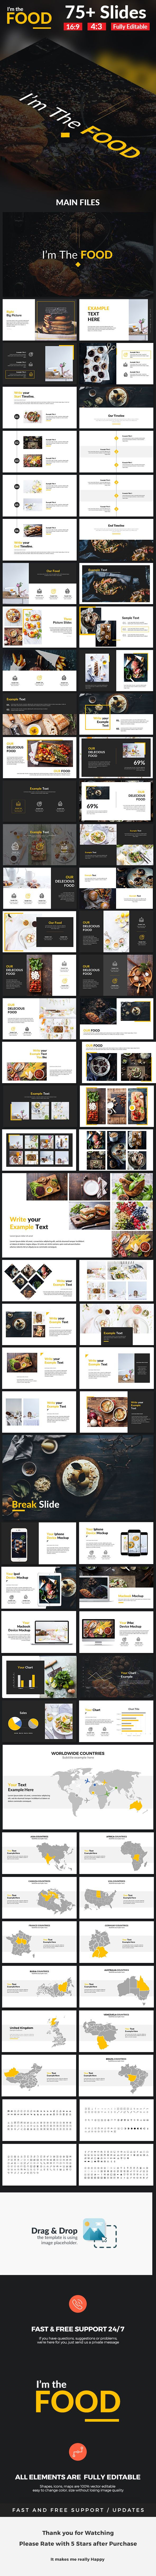 Food    Keynote Template • Download ➝ https://graphicriver.net/item/im-the-food-keynote-template/16986781?ref=pxcr